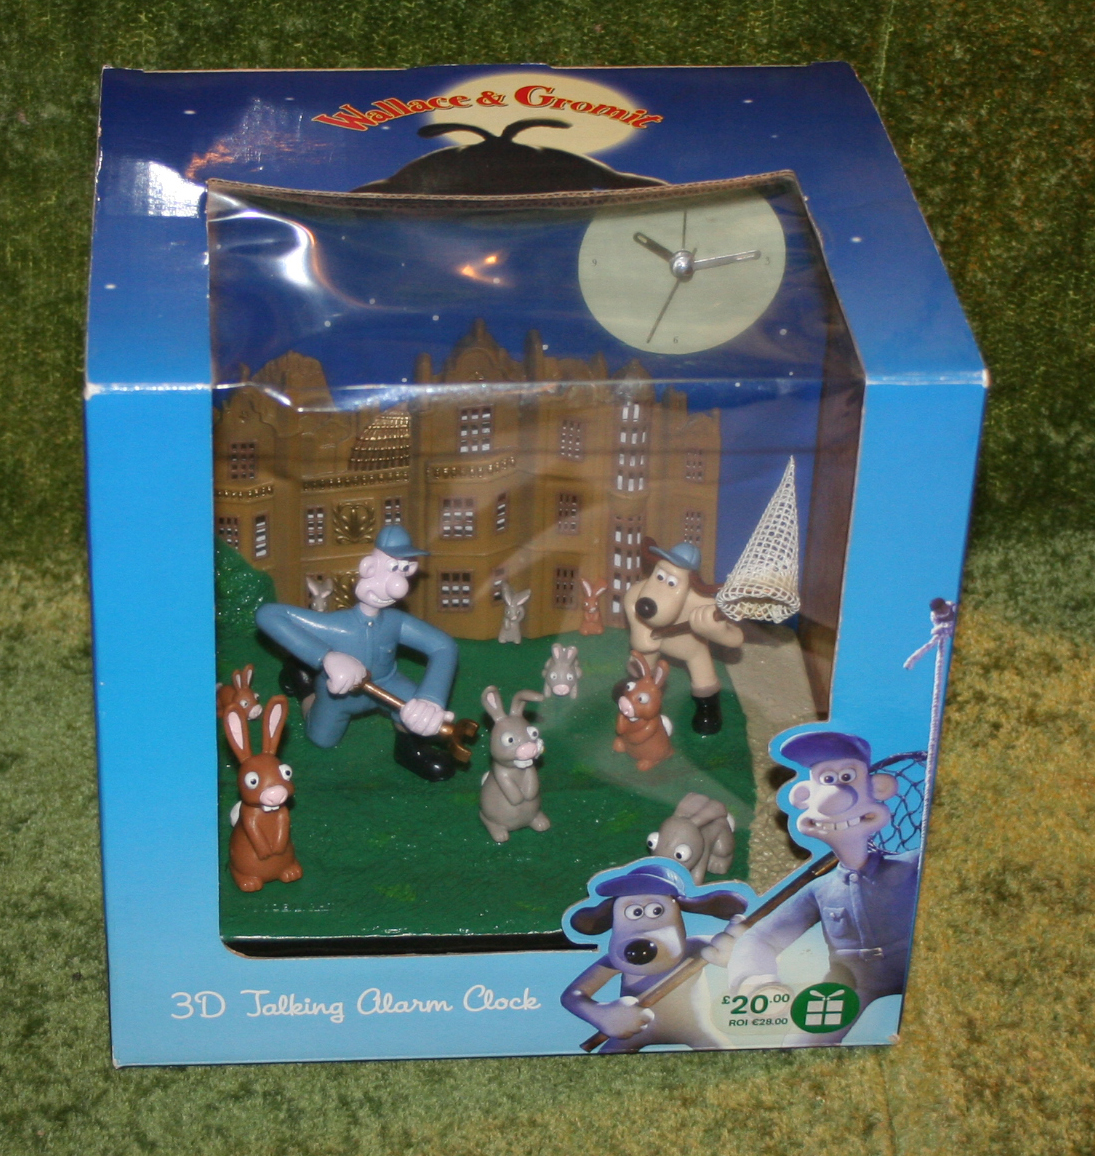 Wallace and Gromit 3D Alarm Clock